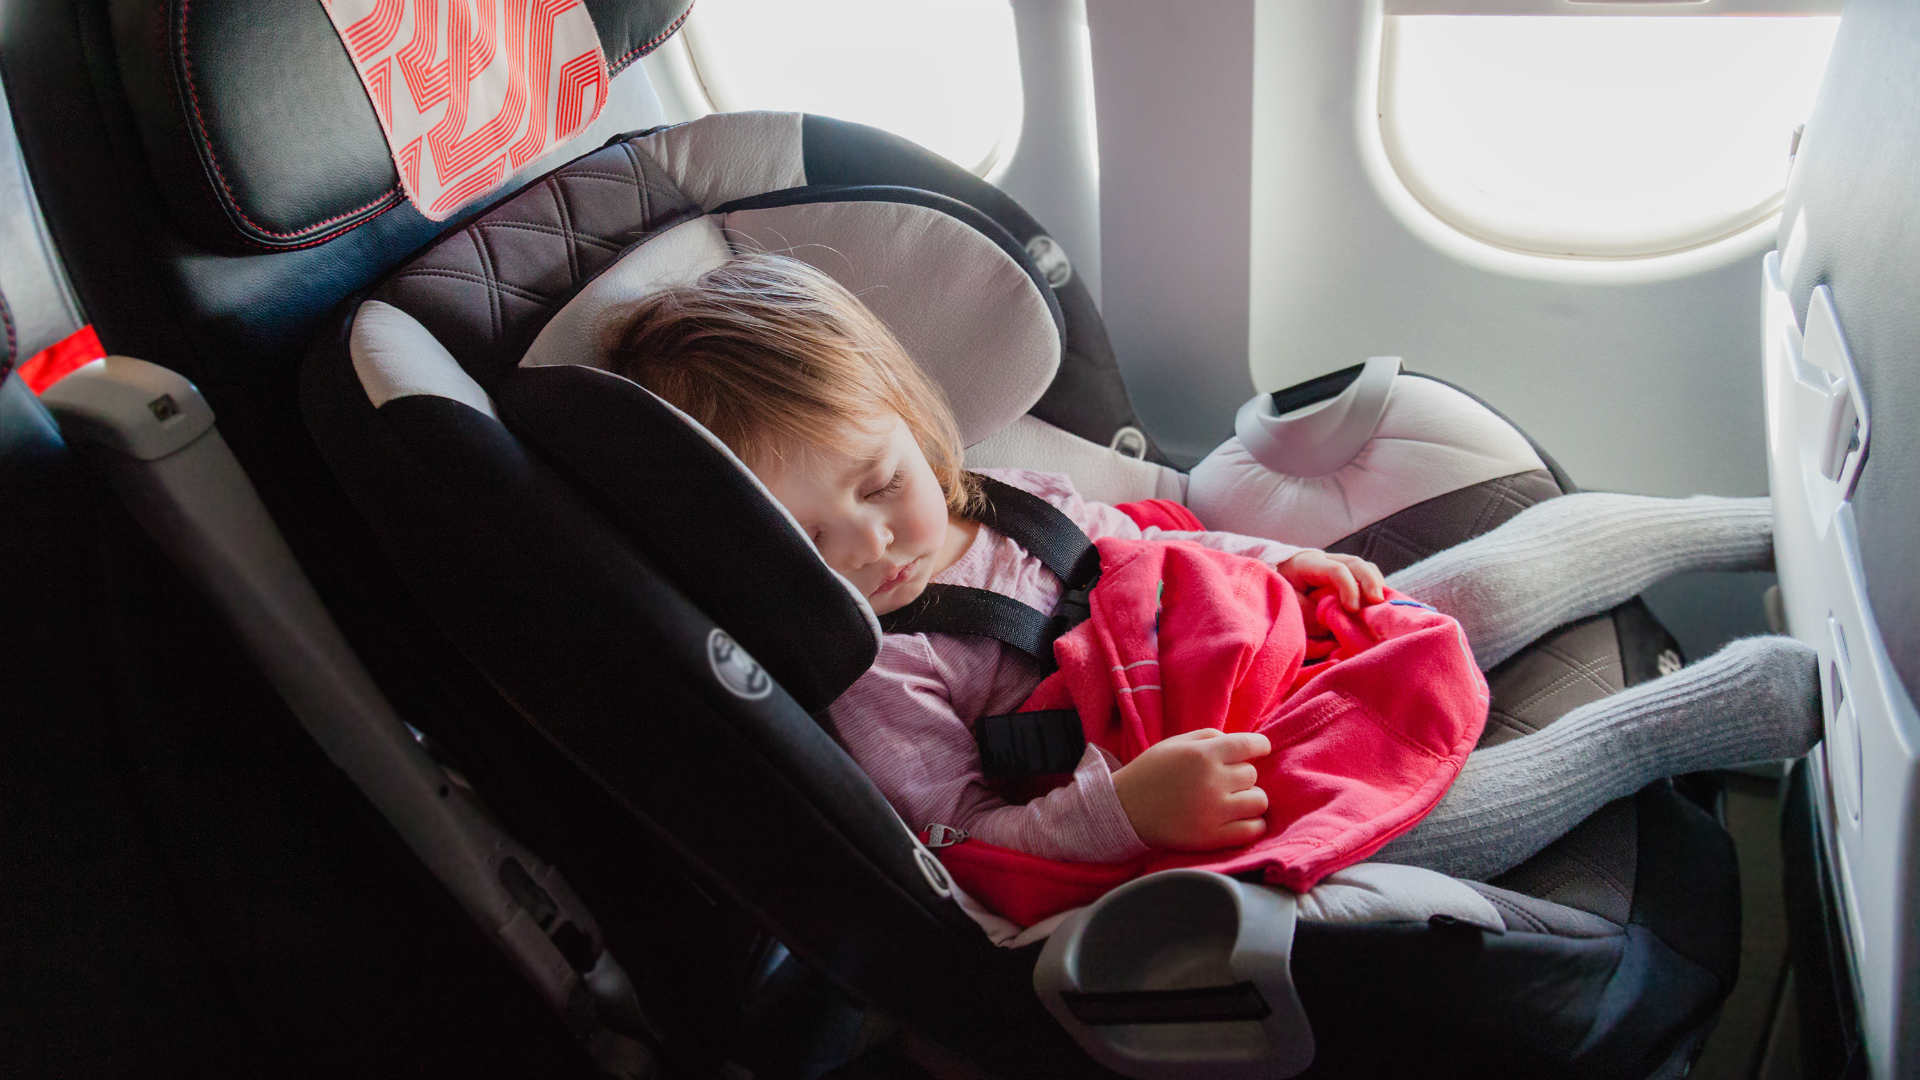 Using a child car seat during the flight